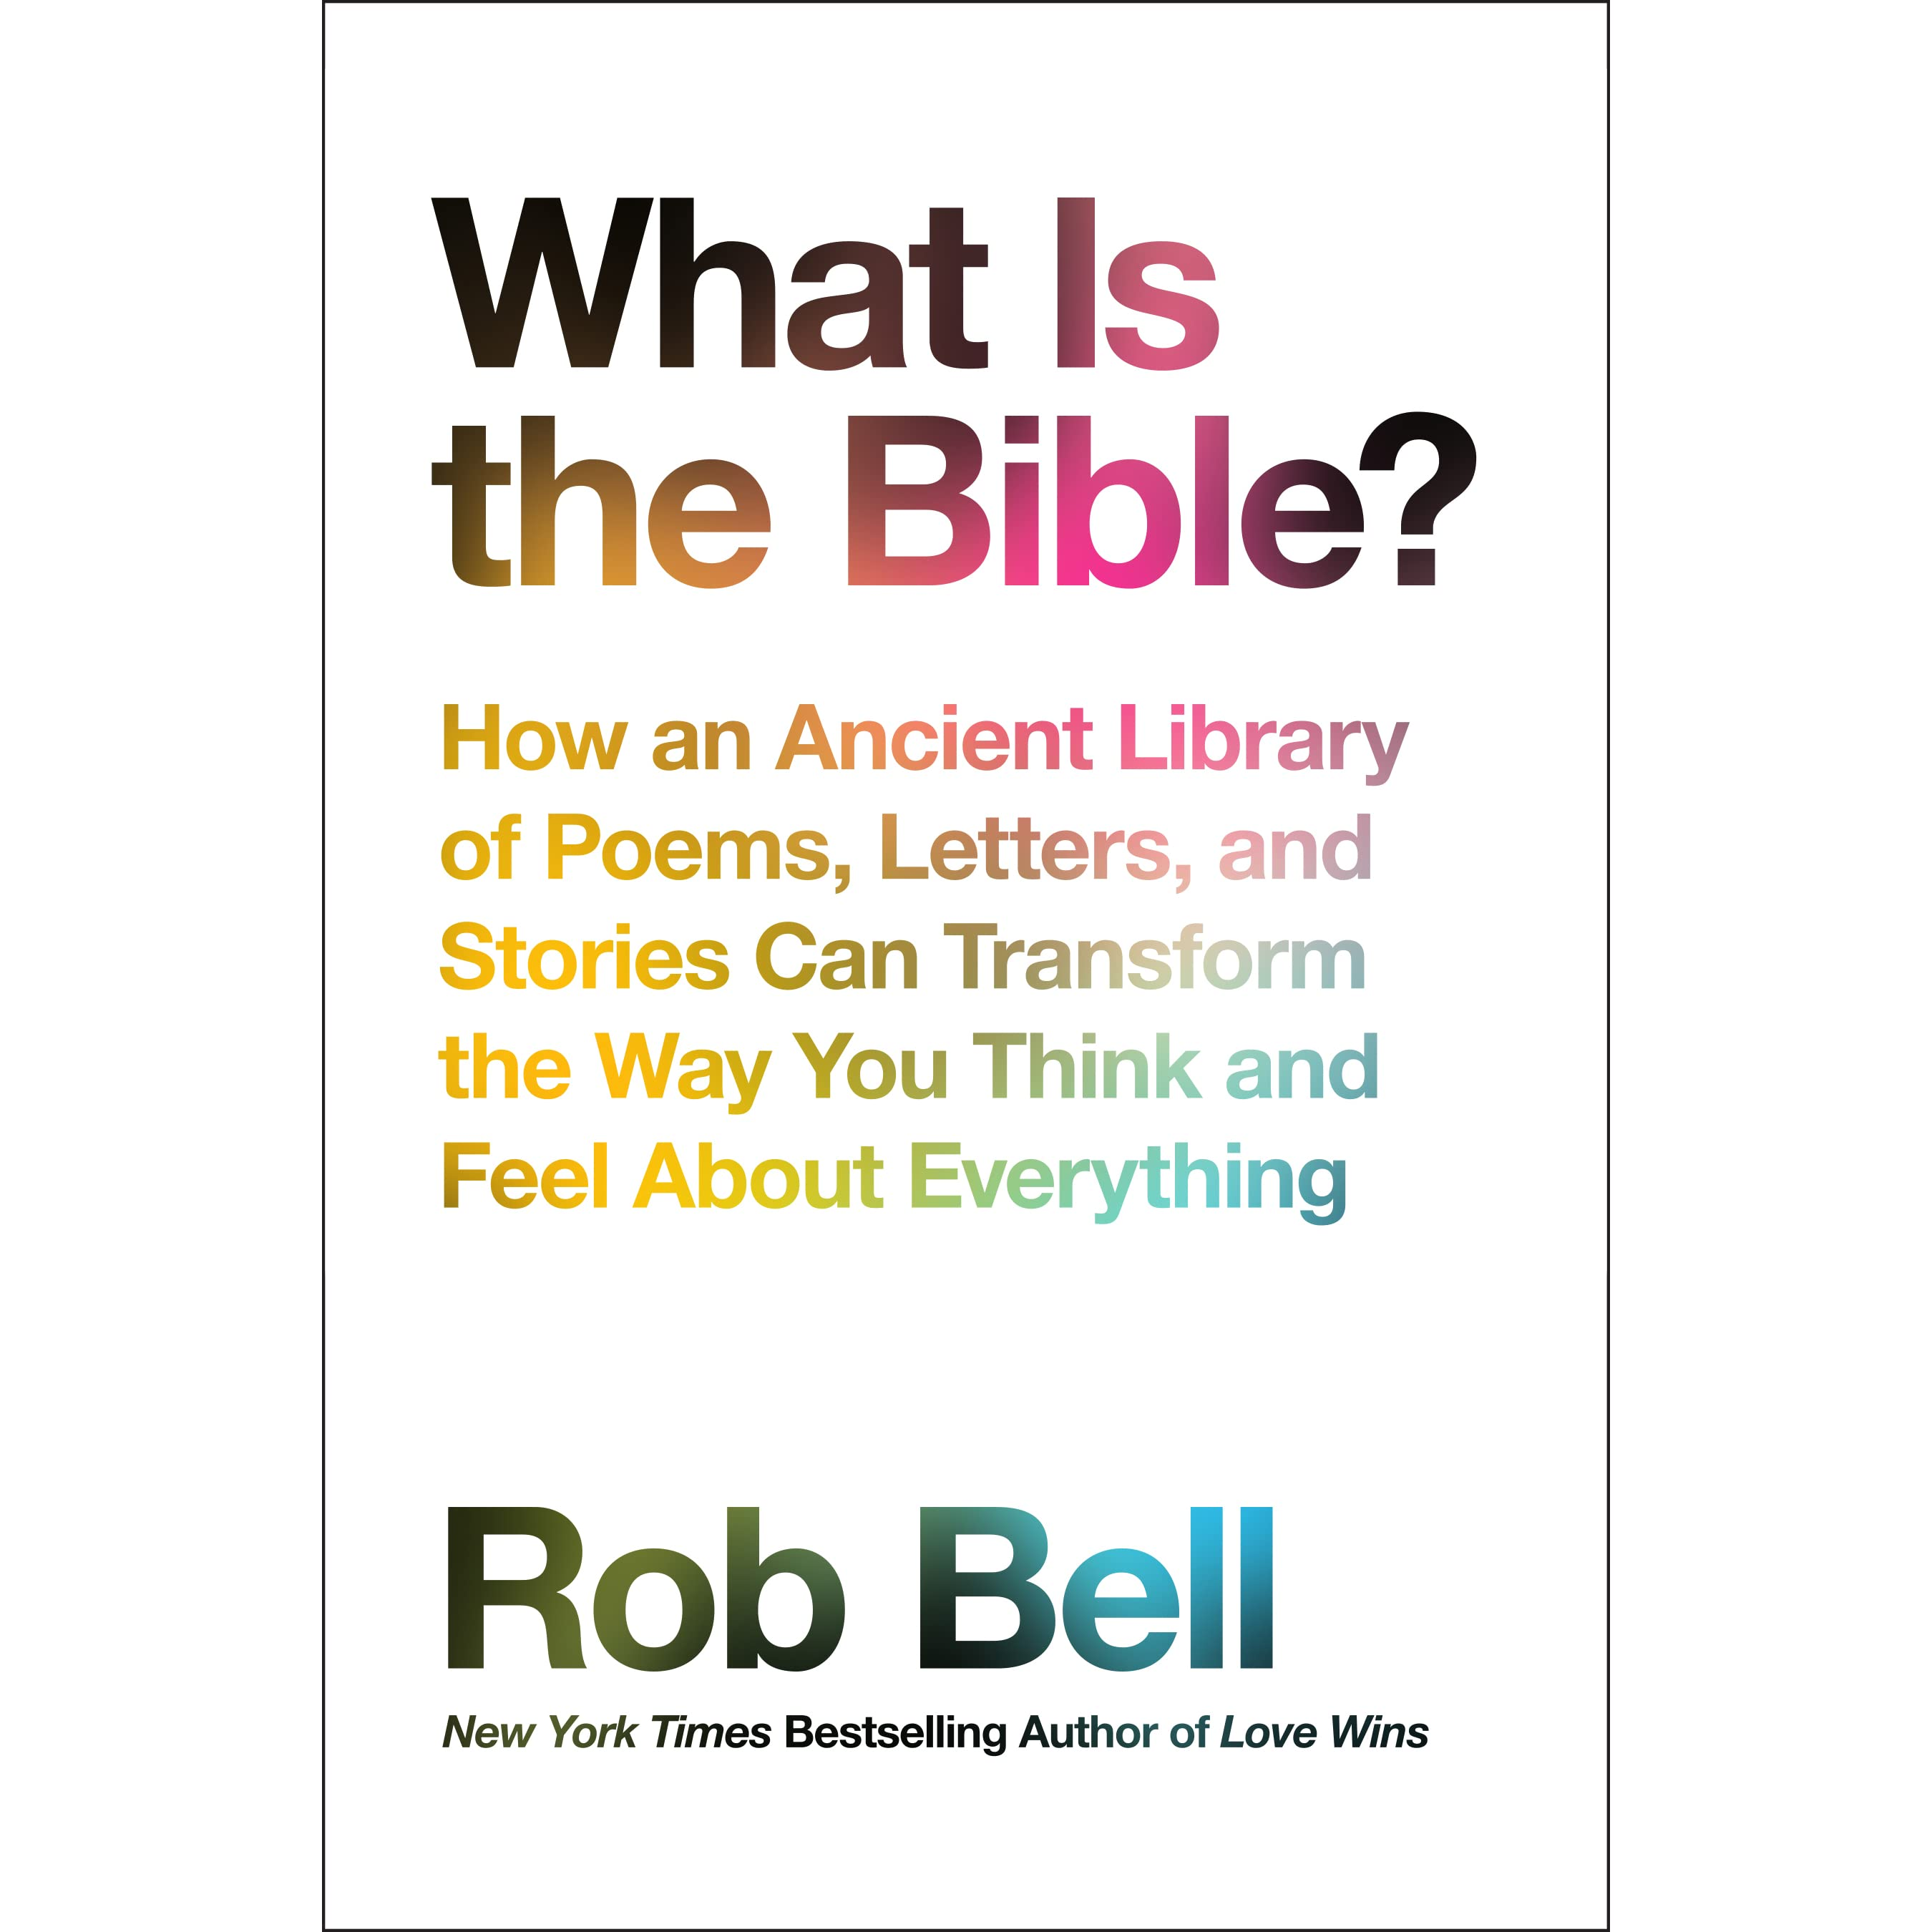 What Is the Bible?: How an Ancient Library of Poems, Letters